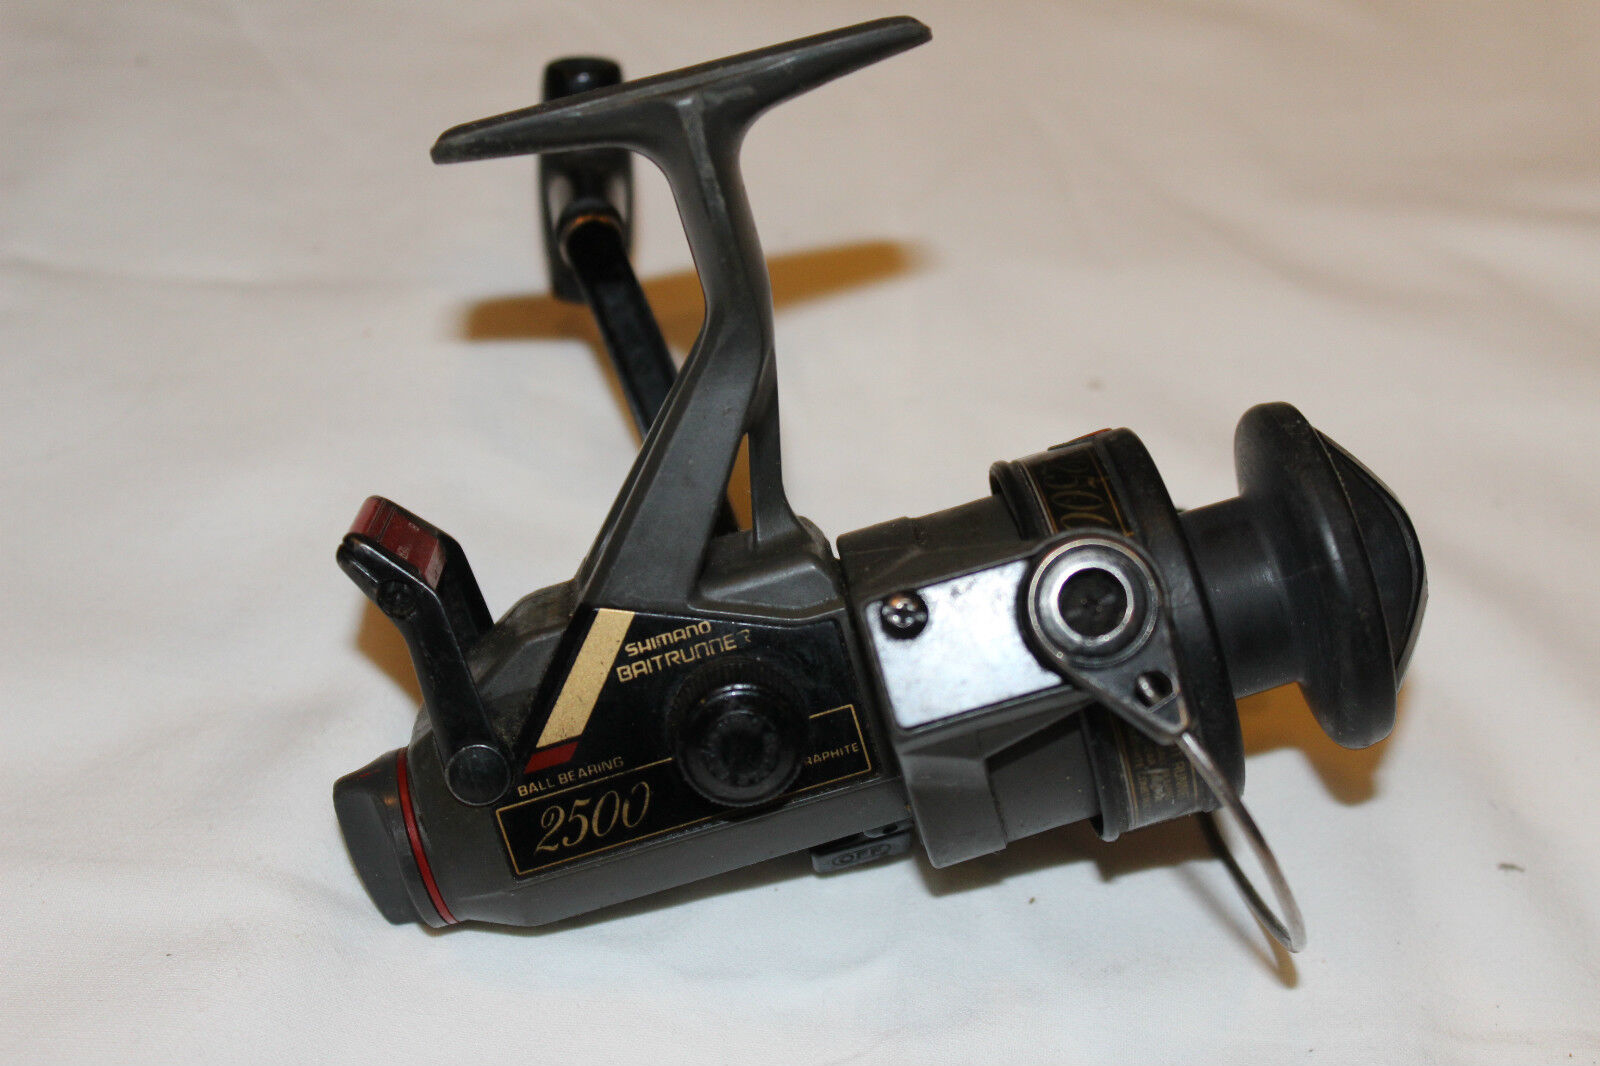 SHIMANO BAITRUNNER 2500-MADE IN IN 2500-MADE JAPAN-Nr-173 edbd40